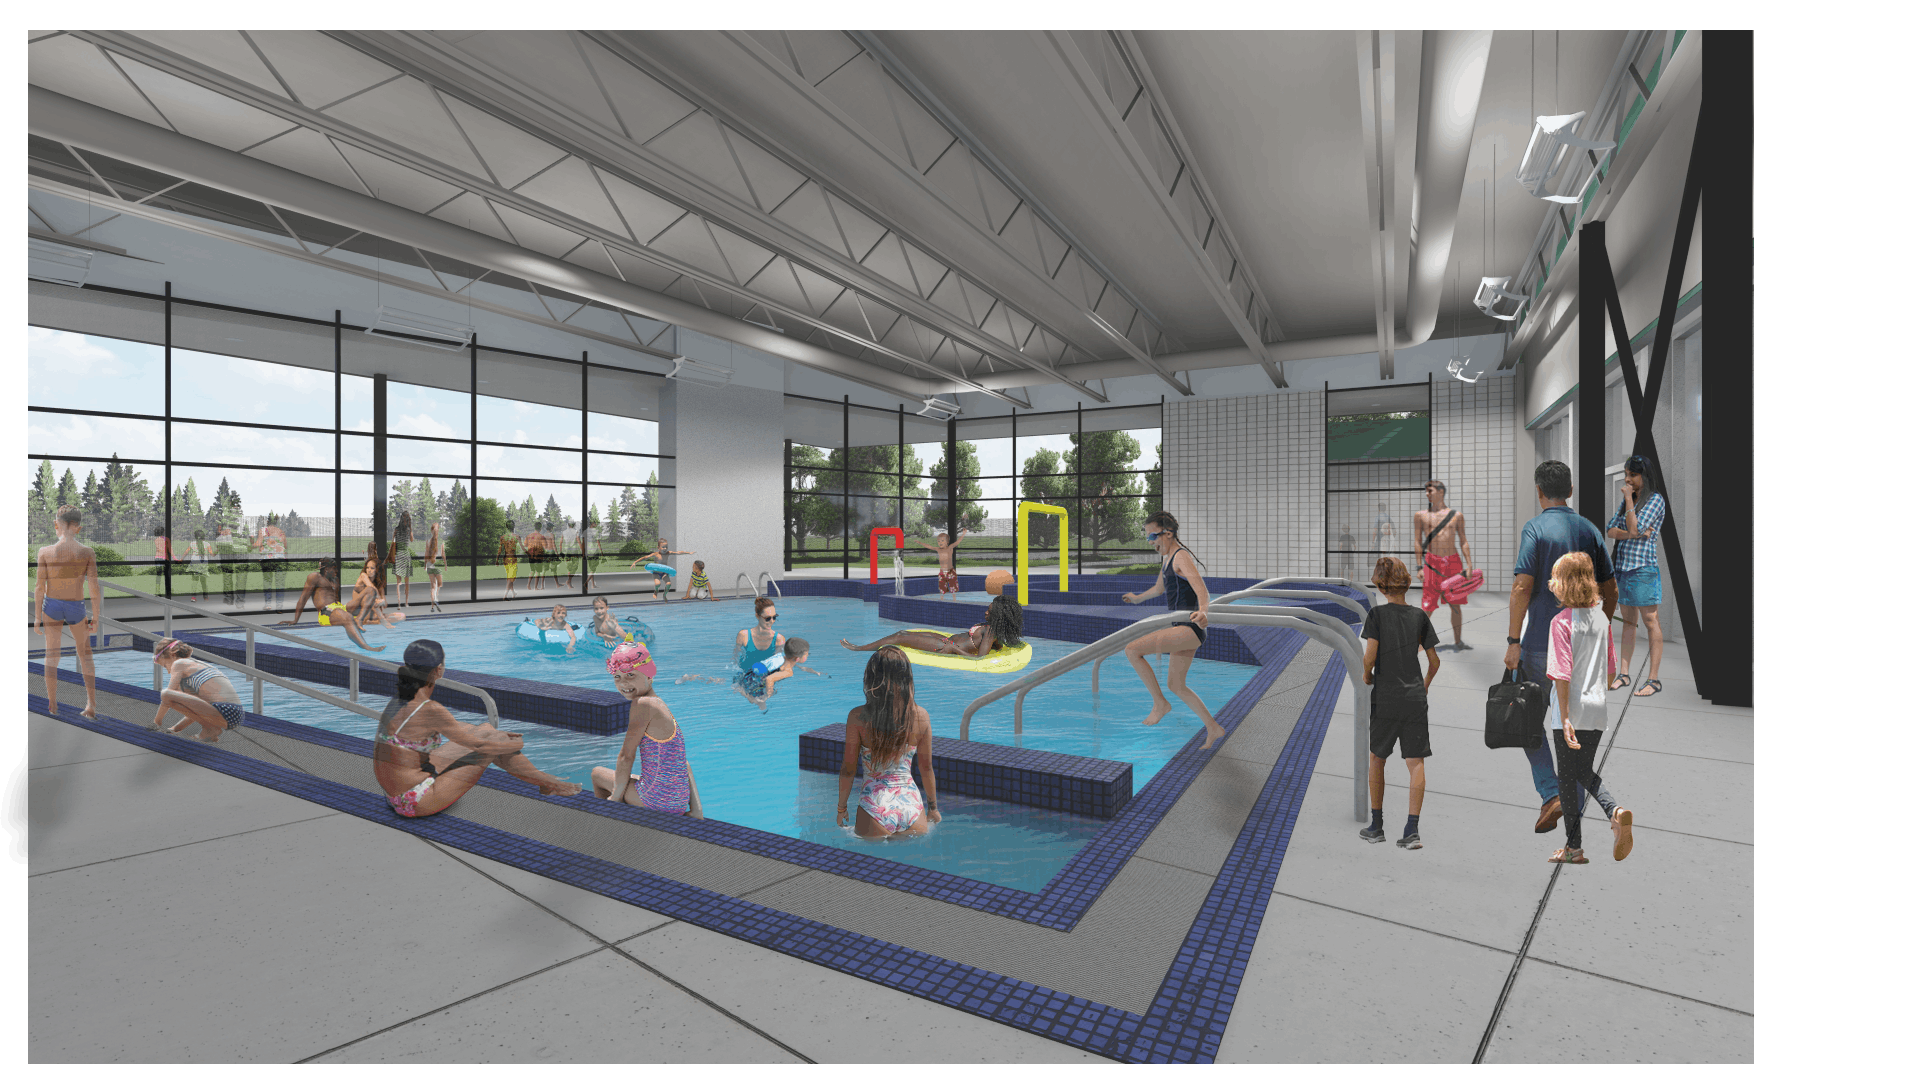 An interior perspective of the planned renovation to one of Sheldon's pools.